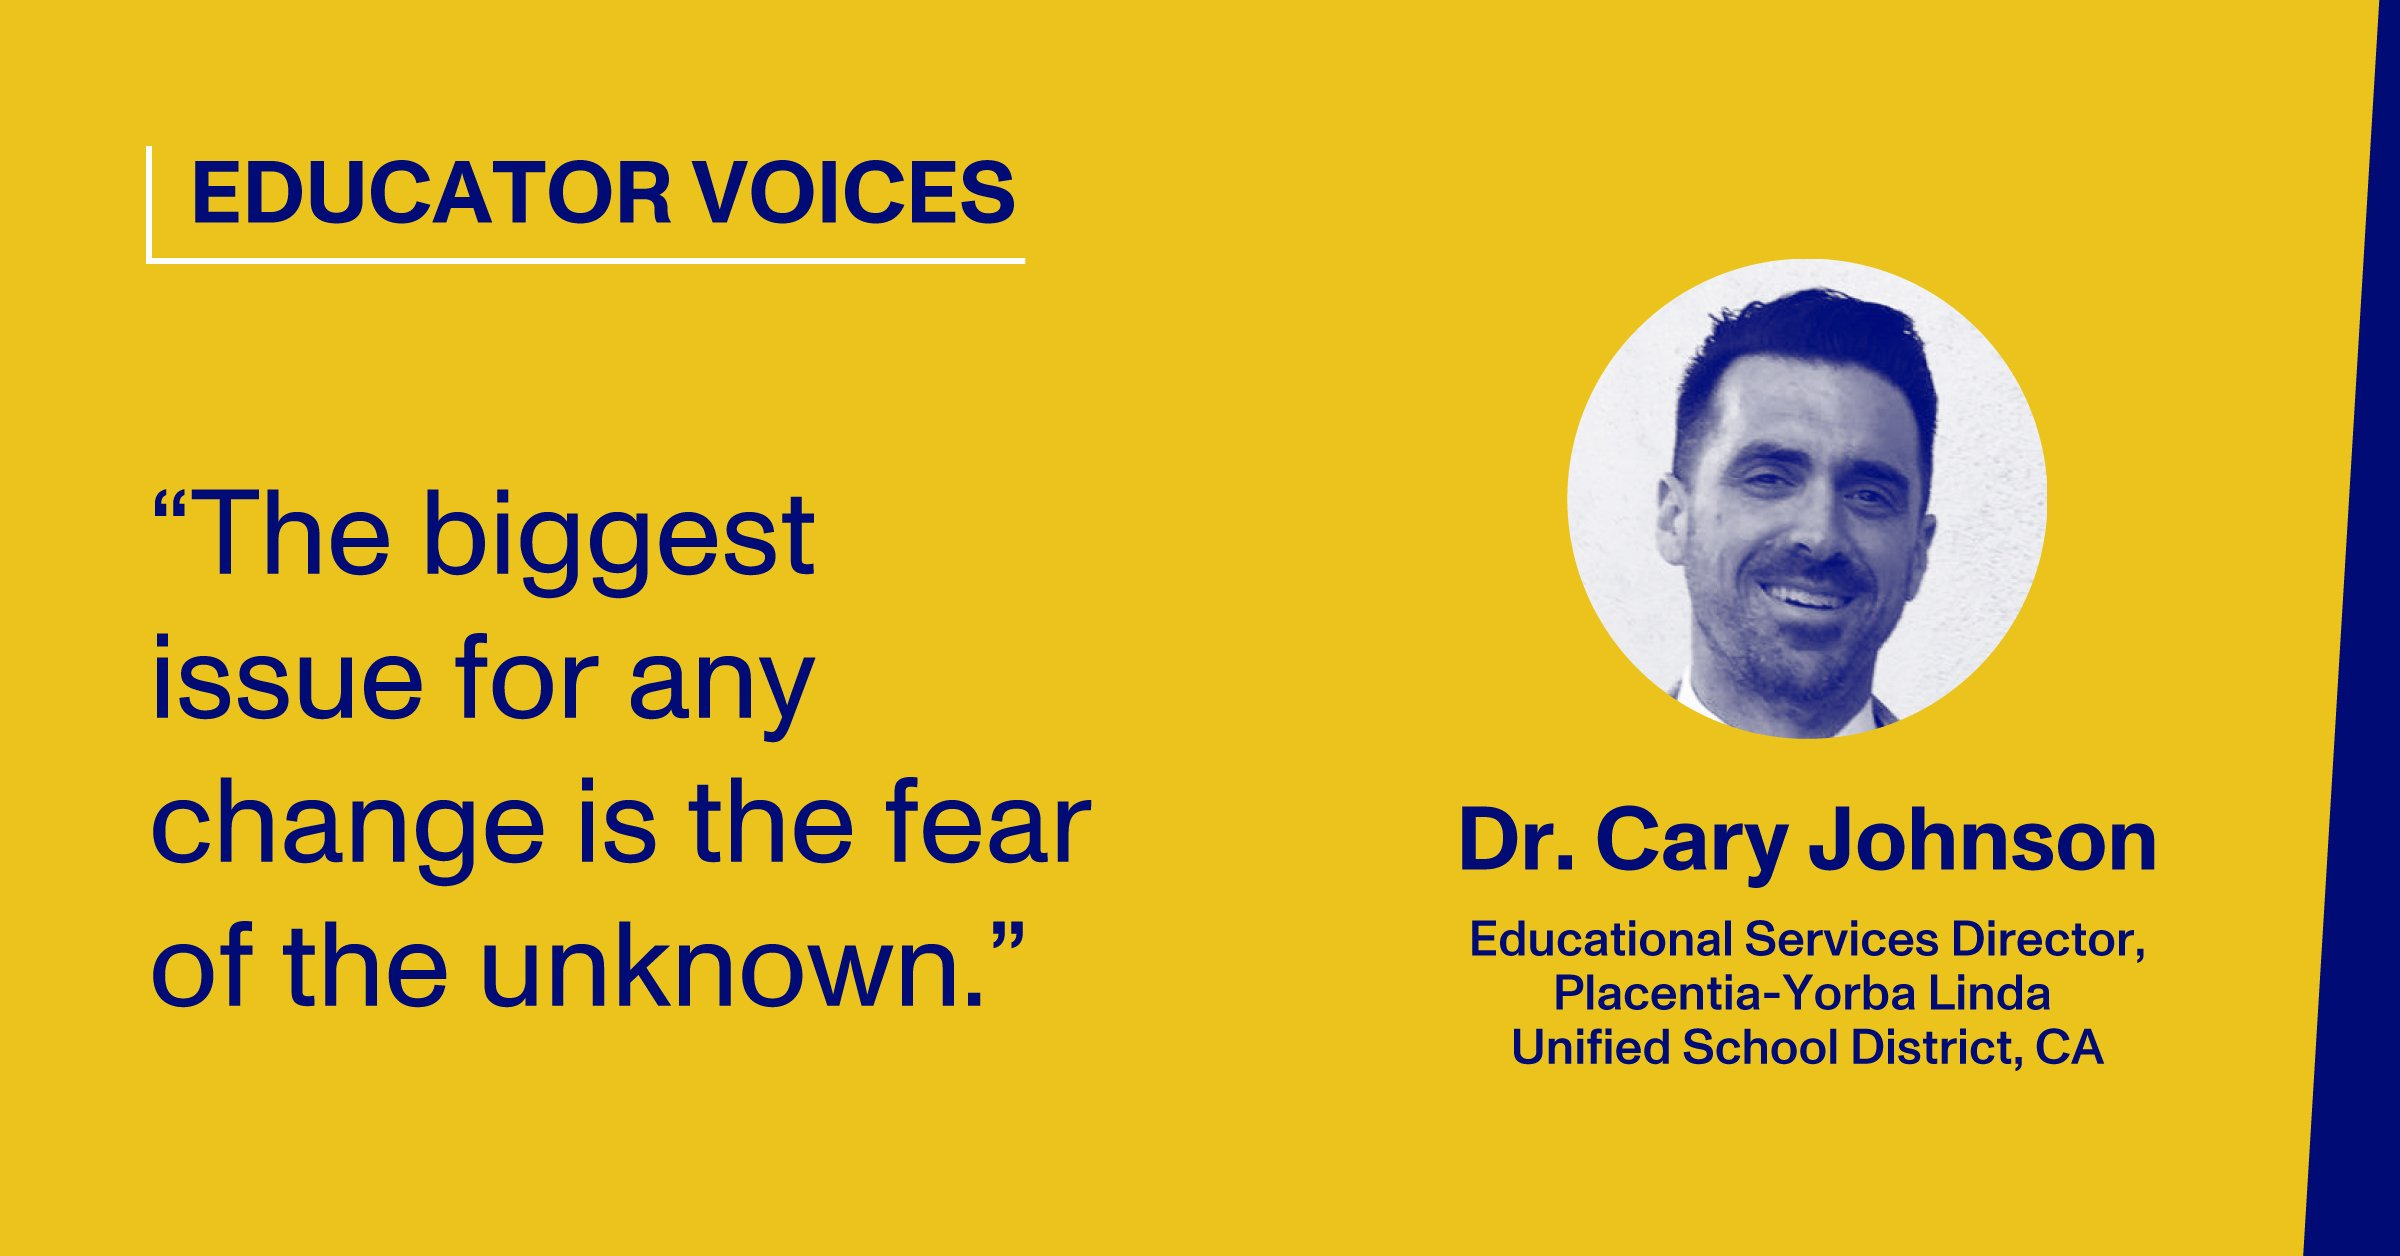 Blog Thumbnail With Headshot and Quote by Dr. Cary Johnson